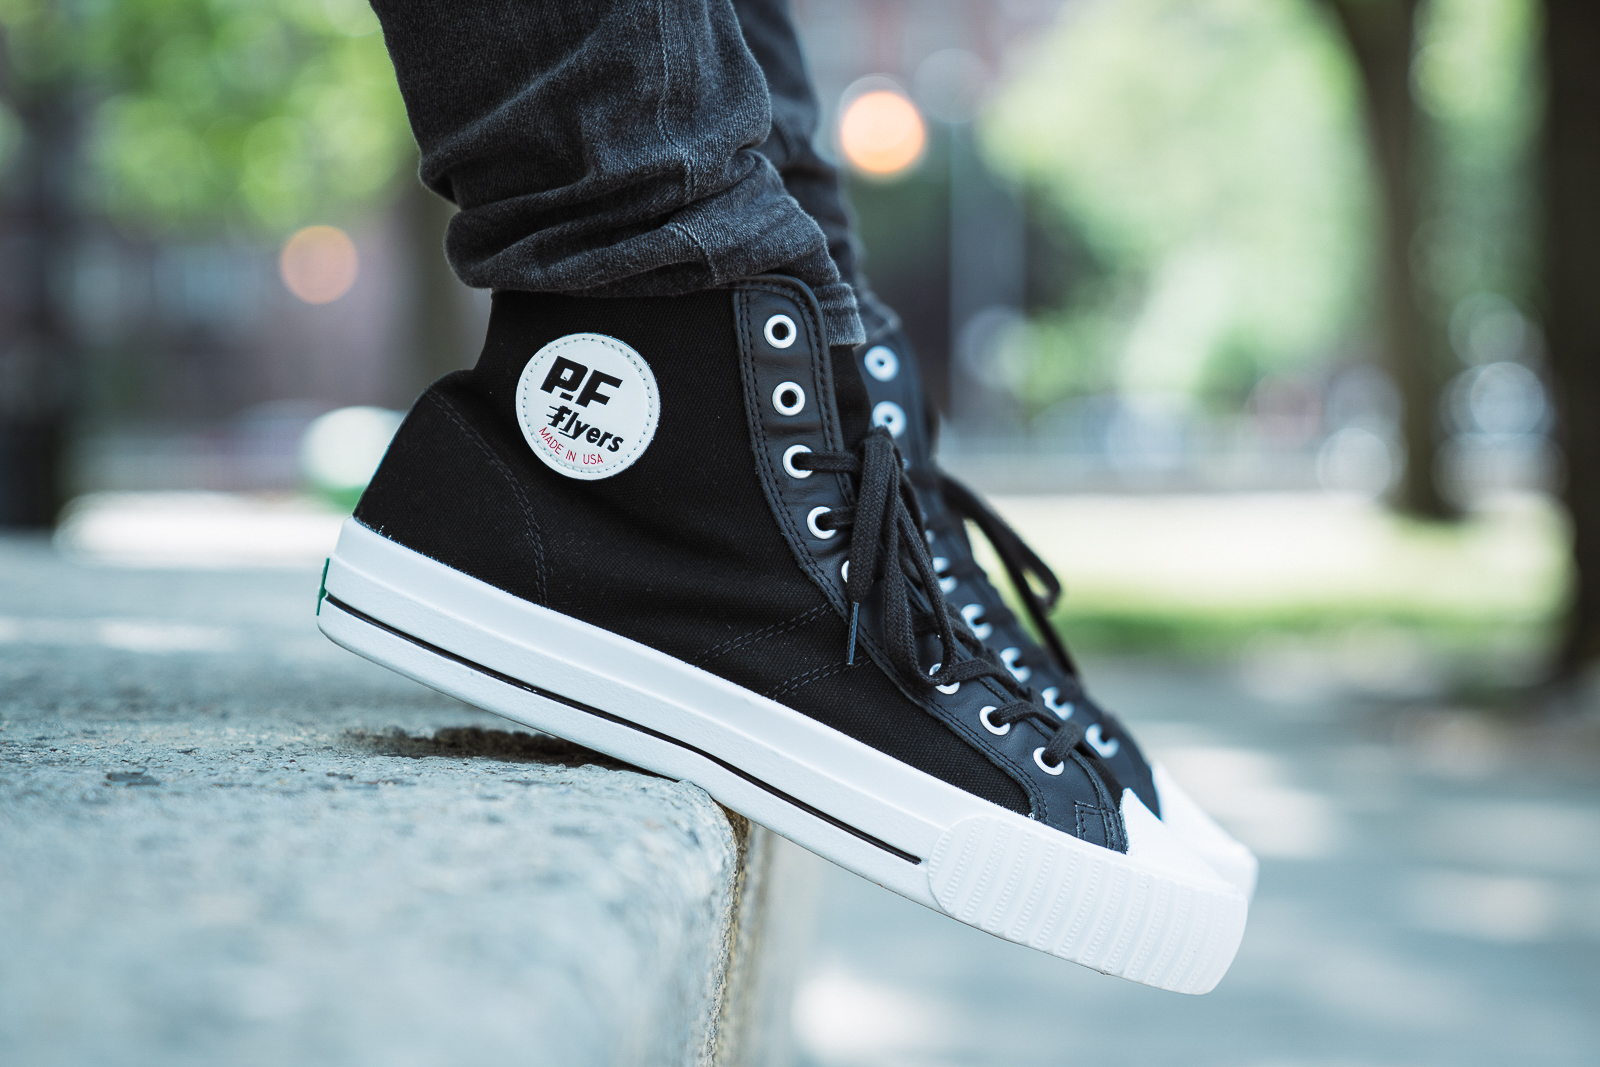 The PF Flyers Made in USA Center Hi Is a Modern Take on a Classic Silhouette